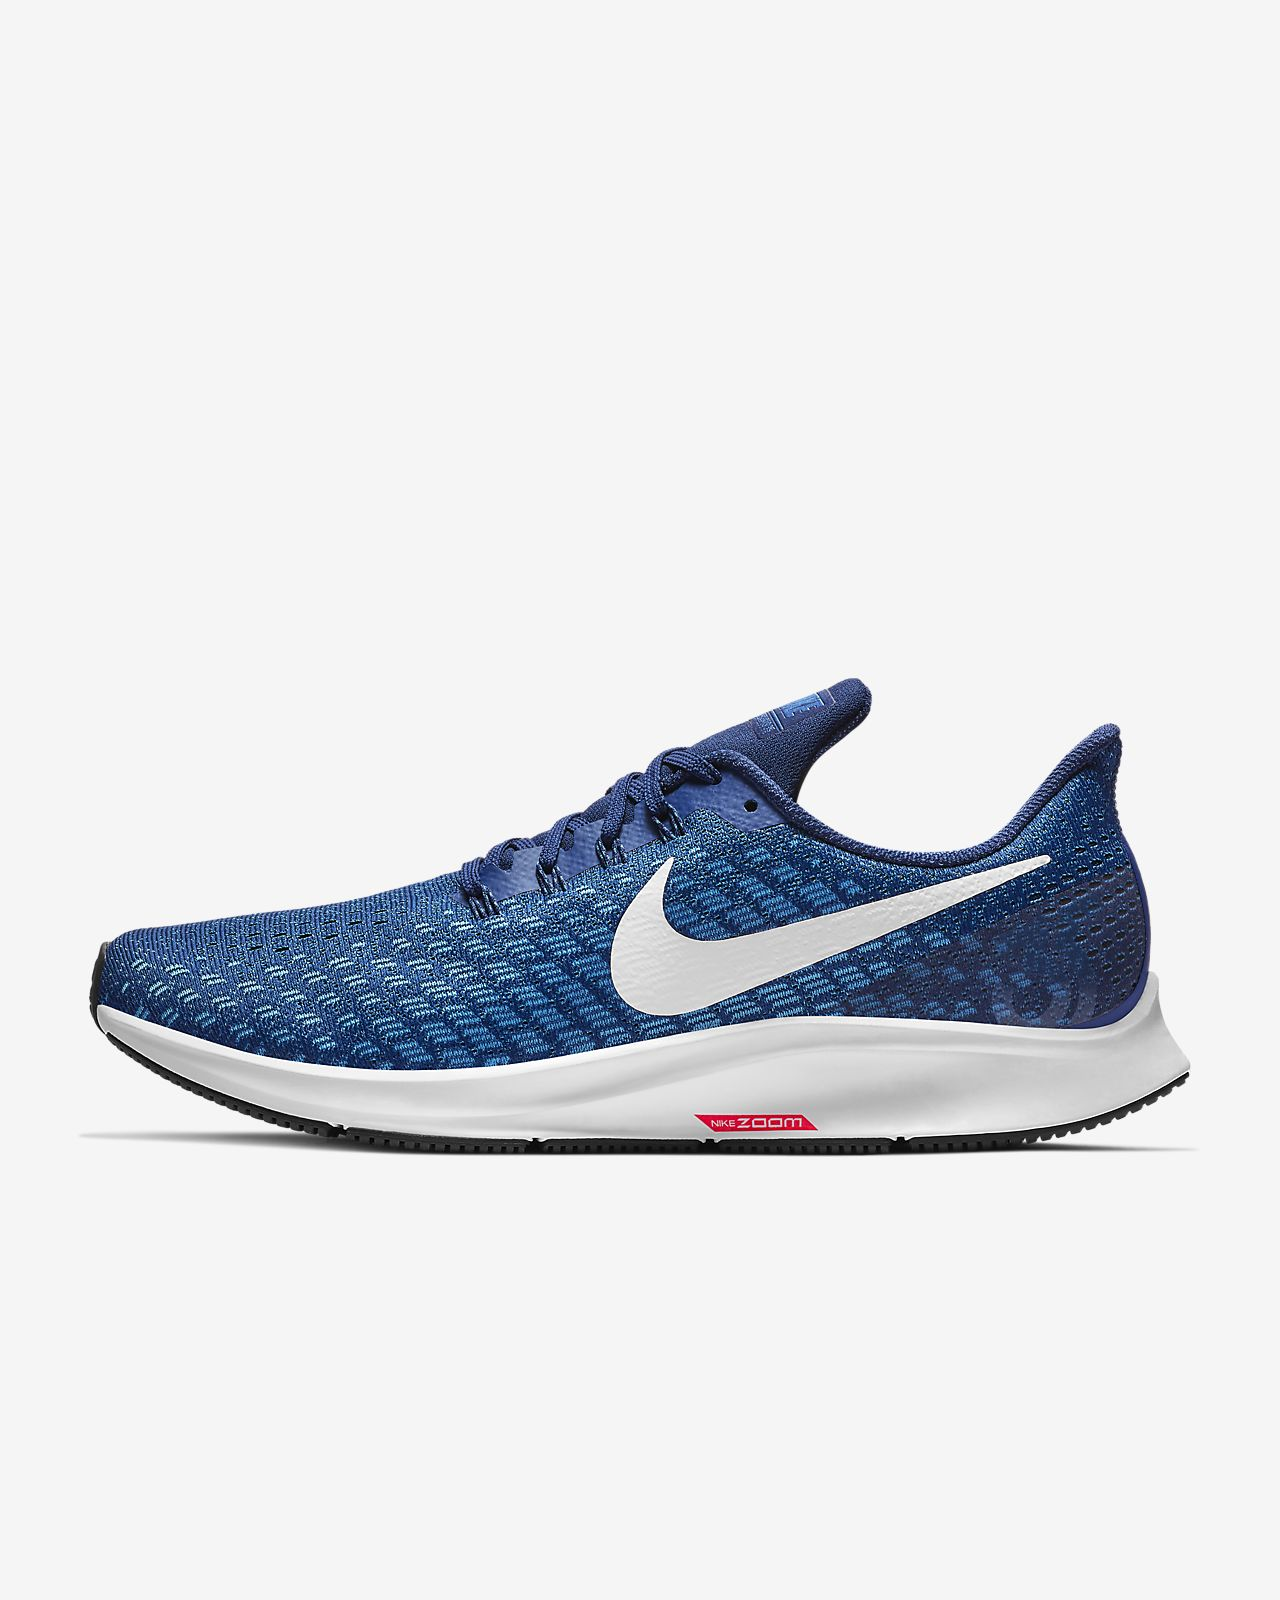 03a77928d4726 Nike Air Zoom Pegasus 35 Men s Running Shoe. Nike.com IN